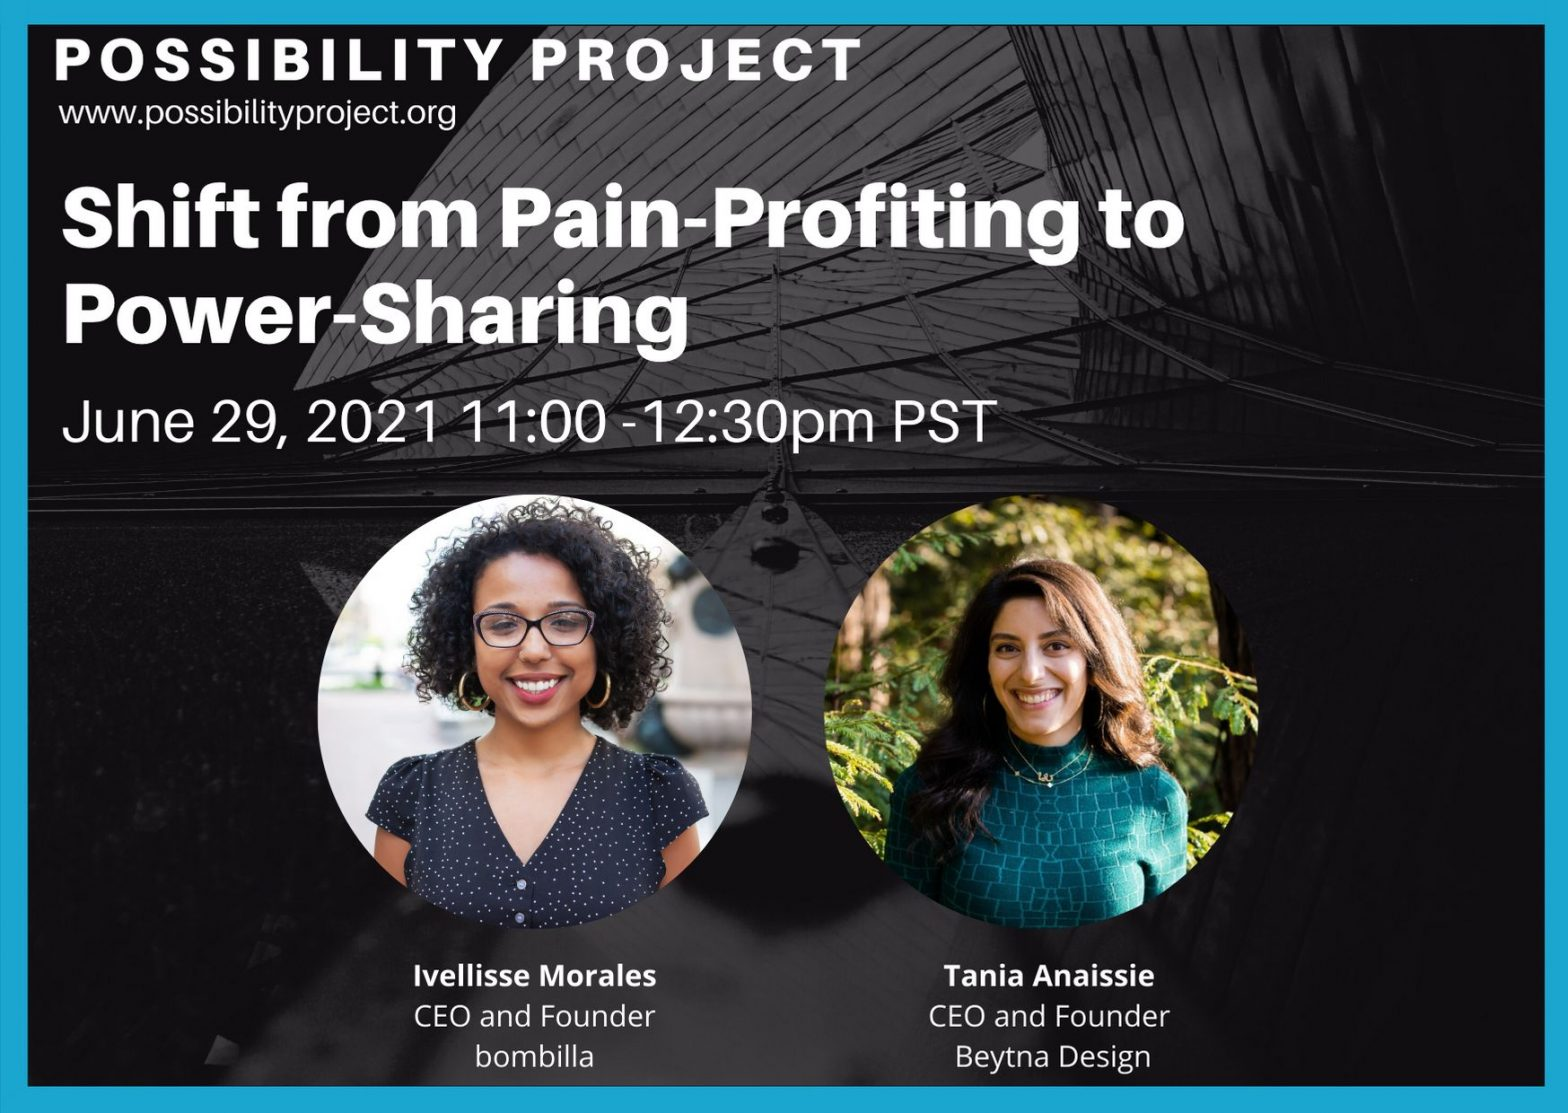 Shift from Pain Profiting to Power-Sharing